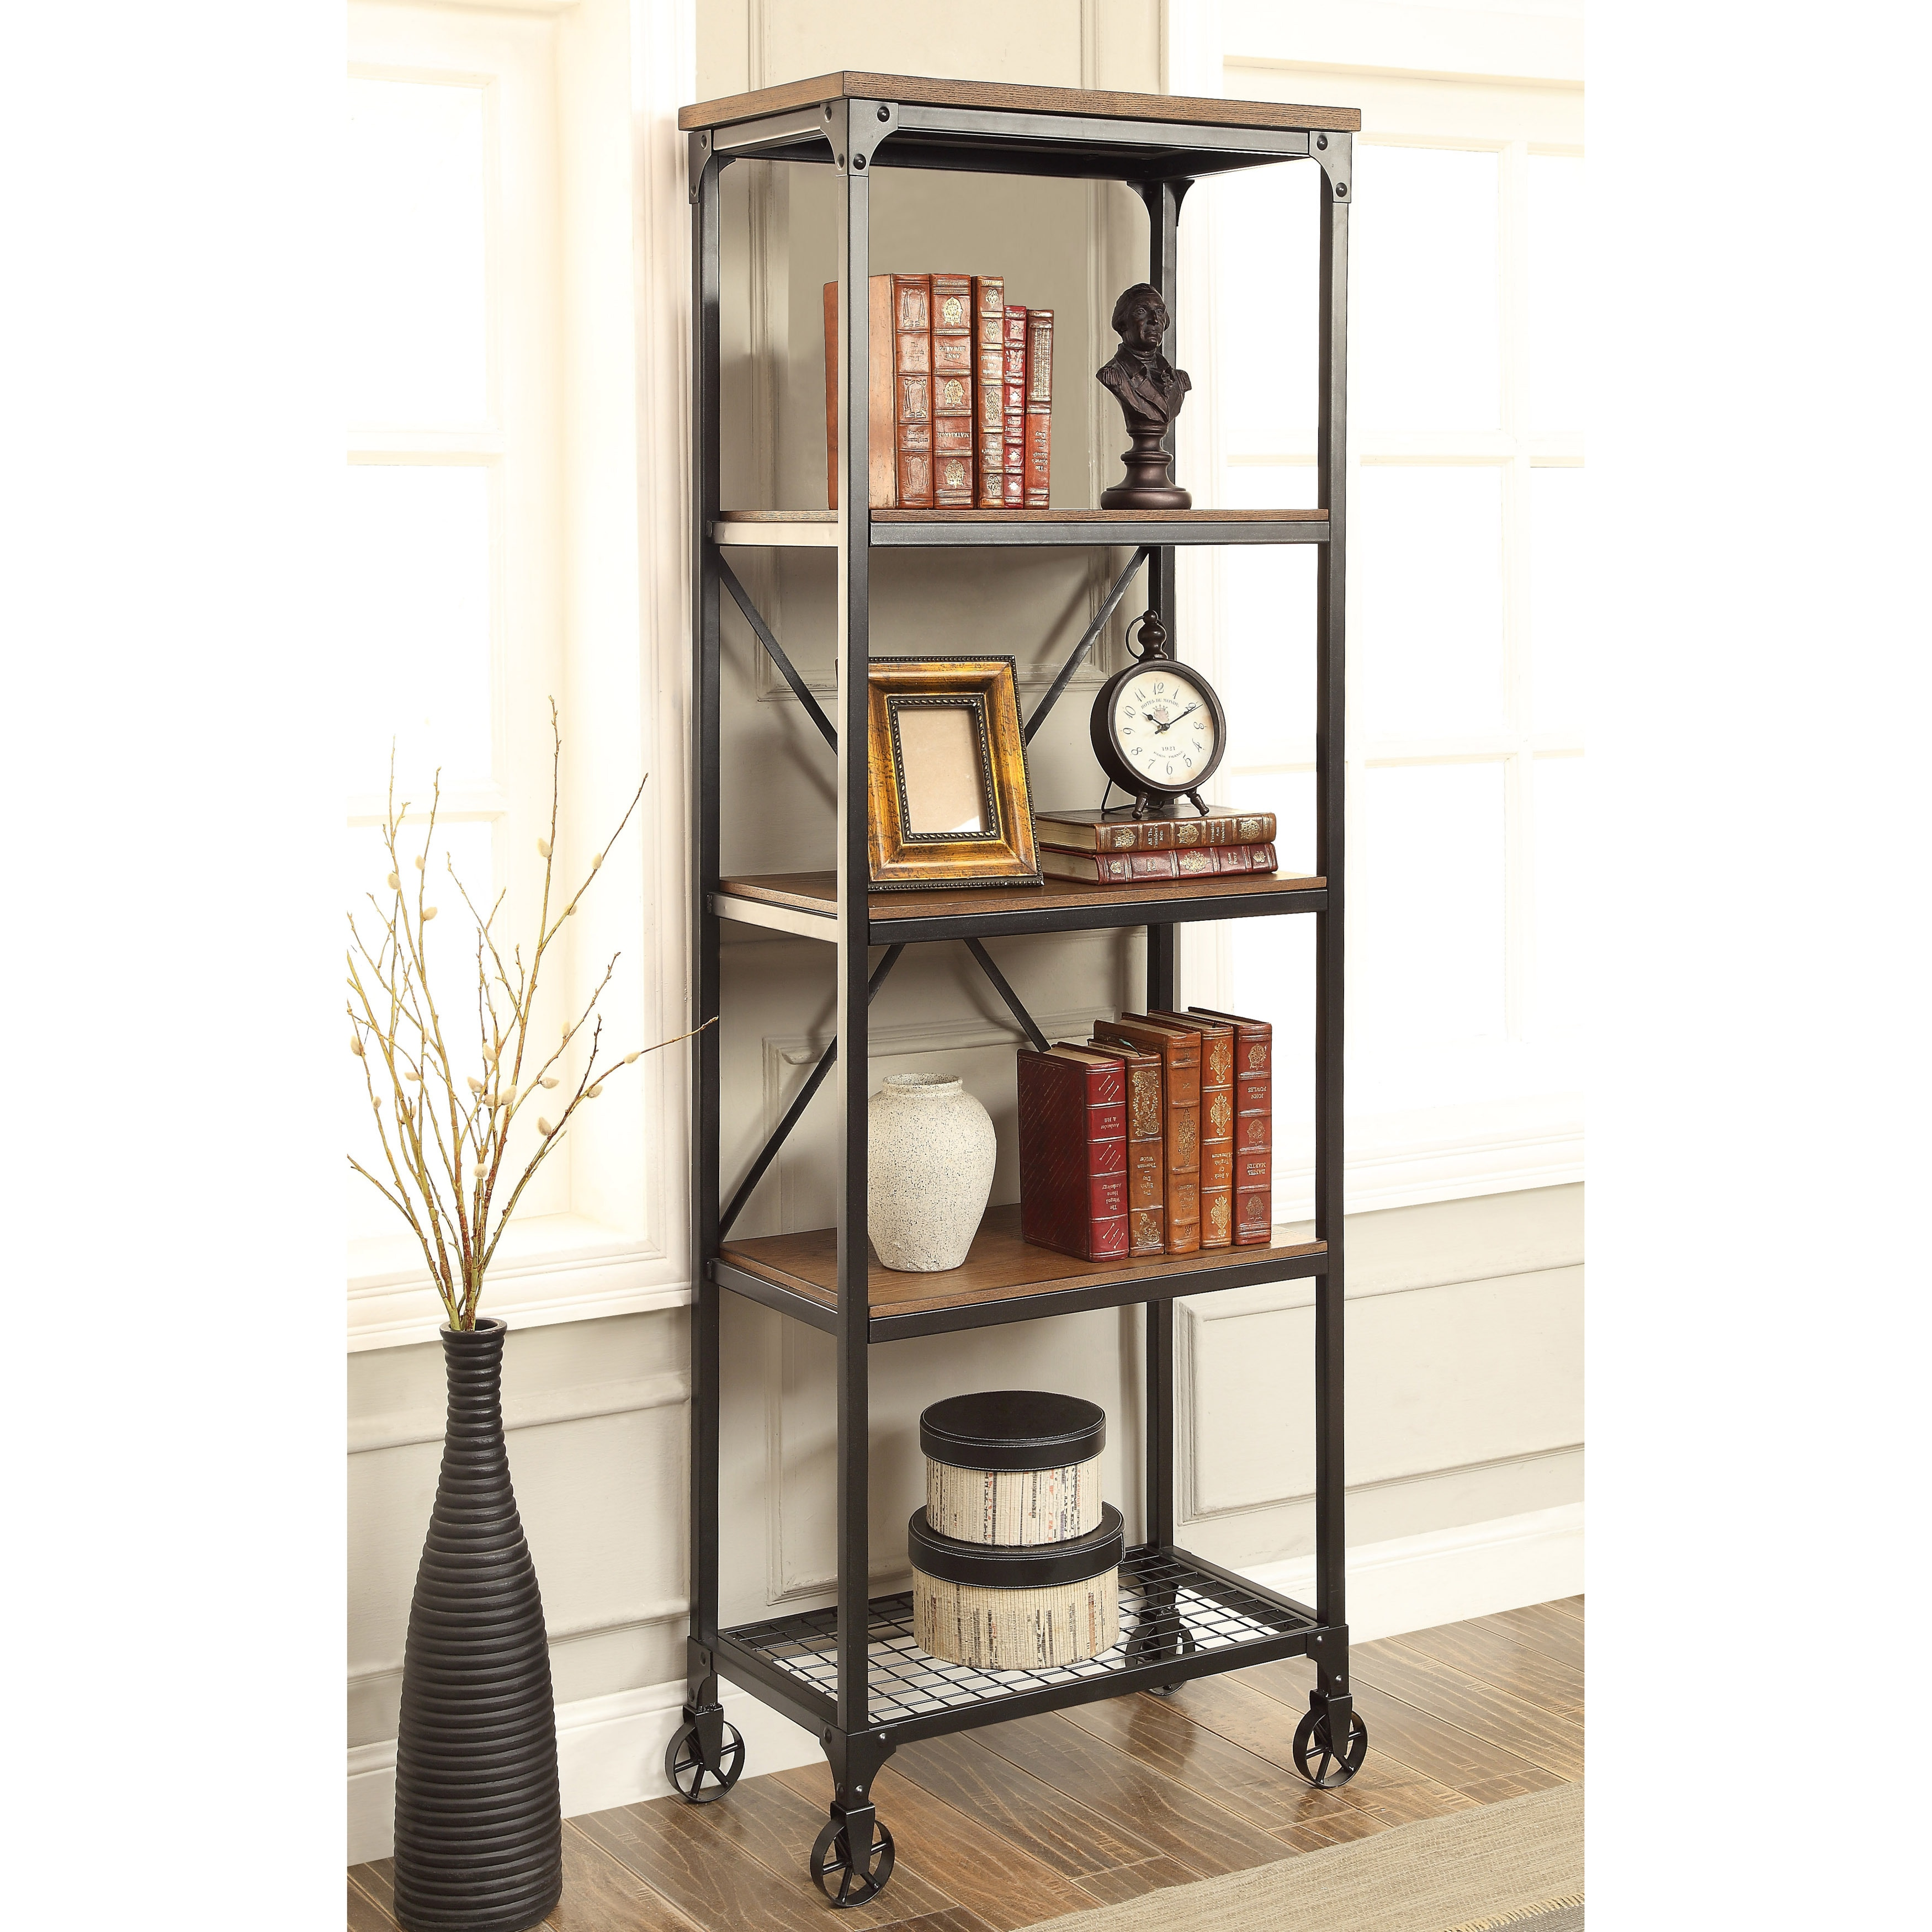 veneer cube wheels polished design open dividers interior and bookshelf well light square divider shelves multifunction storage racks black mobile on plywood furniture seen with wood images featured most bookcase bins hardboard rack room compartement added brown in agreeable as